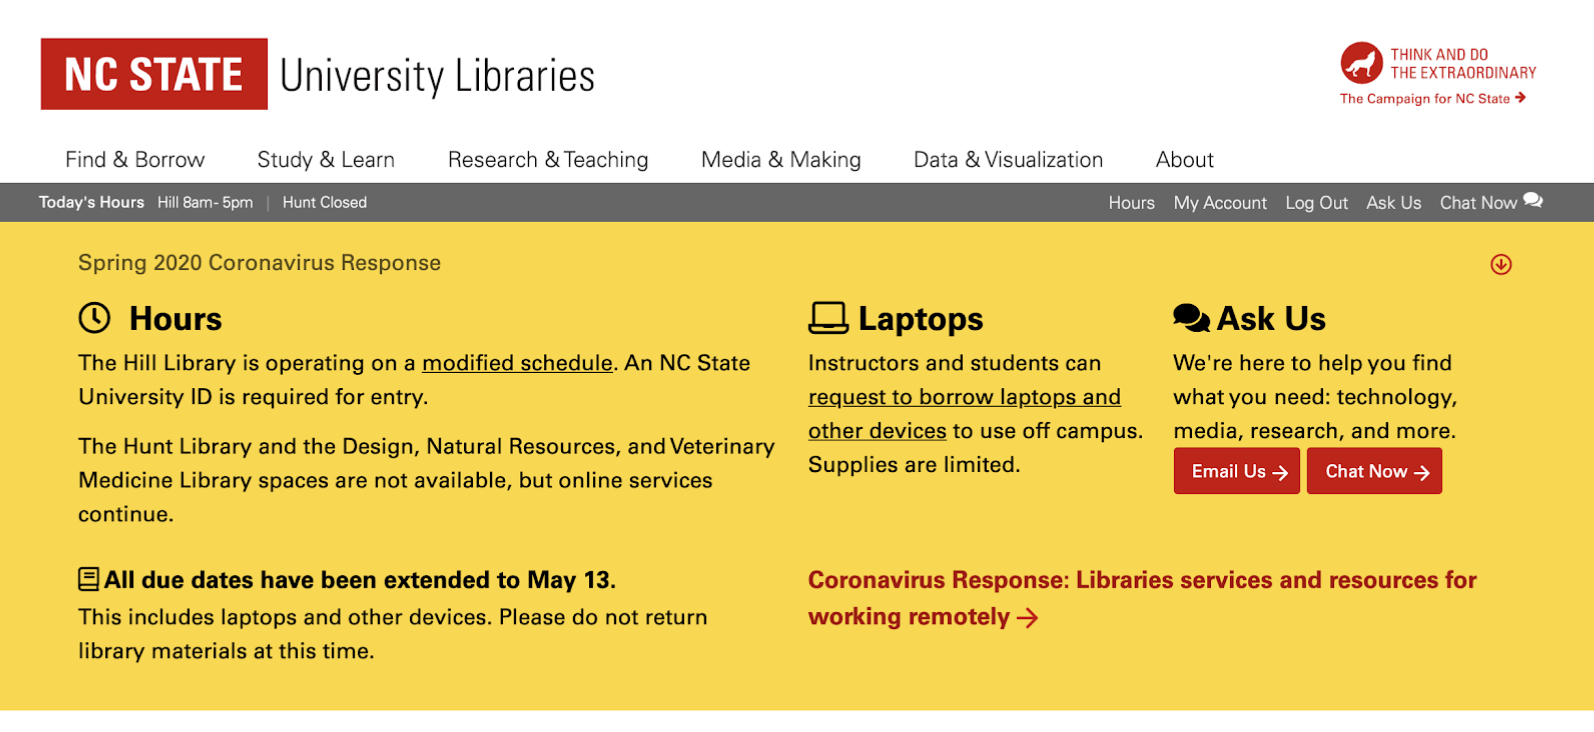 Screenshot of the NC State University Libraries homepage, with a large yellow alert banner that reads Spring 2020 Coronavirus Response' and contains hours changes, due date info, and ways to get help